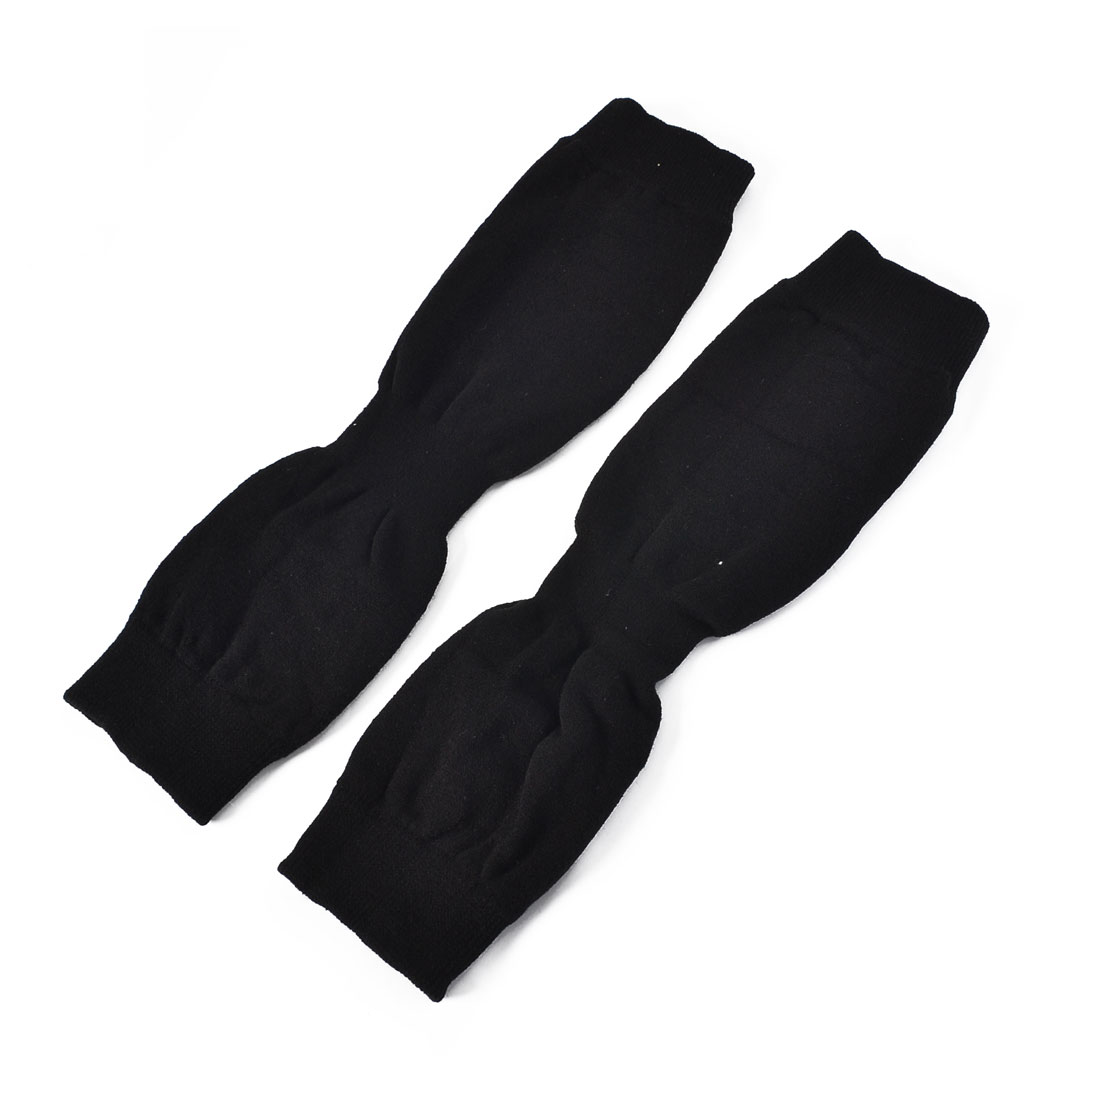 Pair Winter Black Knitting Wrinkled Elastic Leg Warmer Protector for Lady Woman